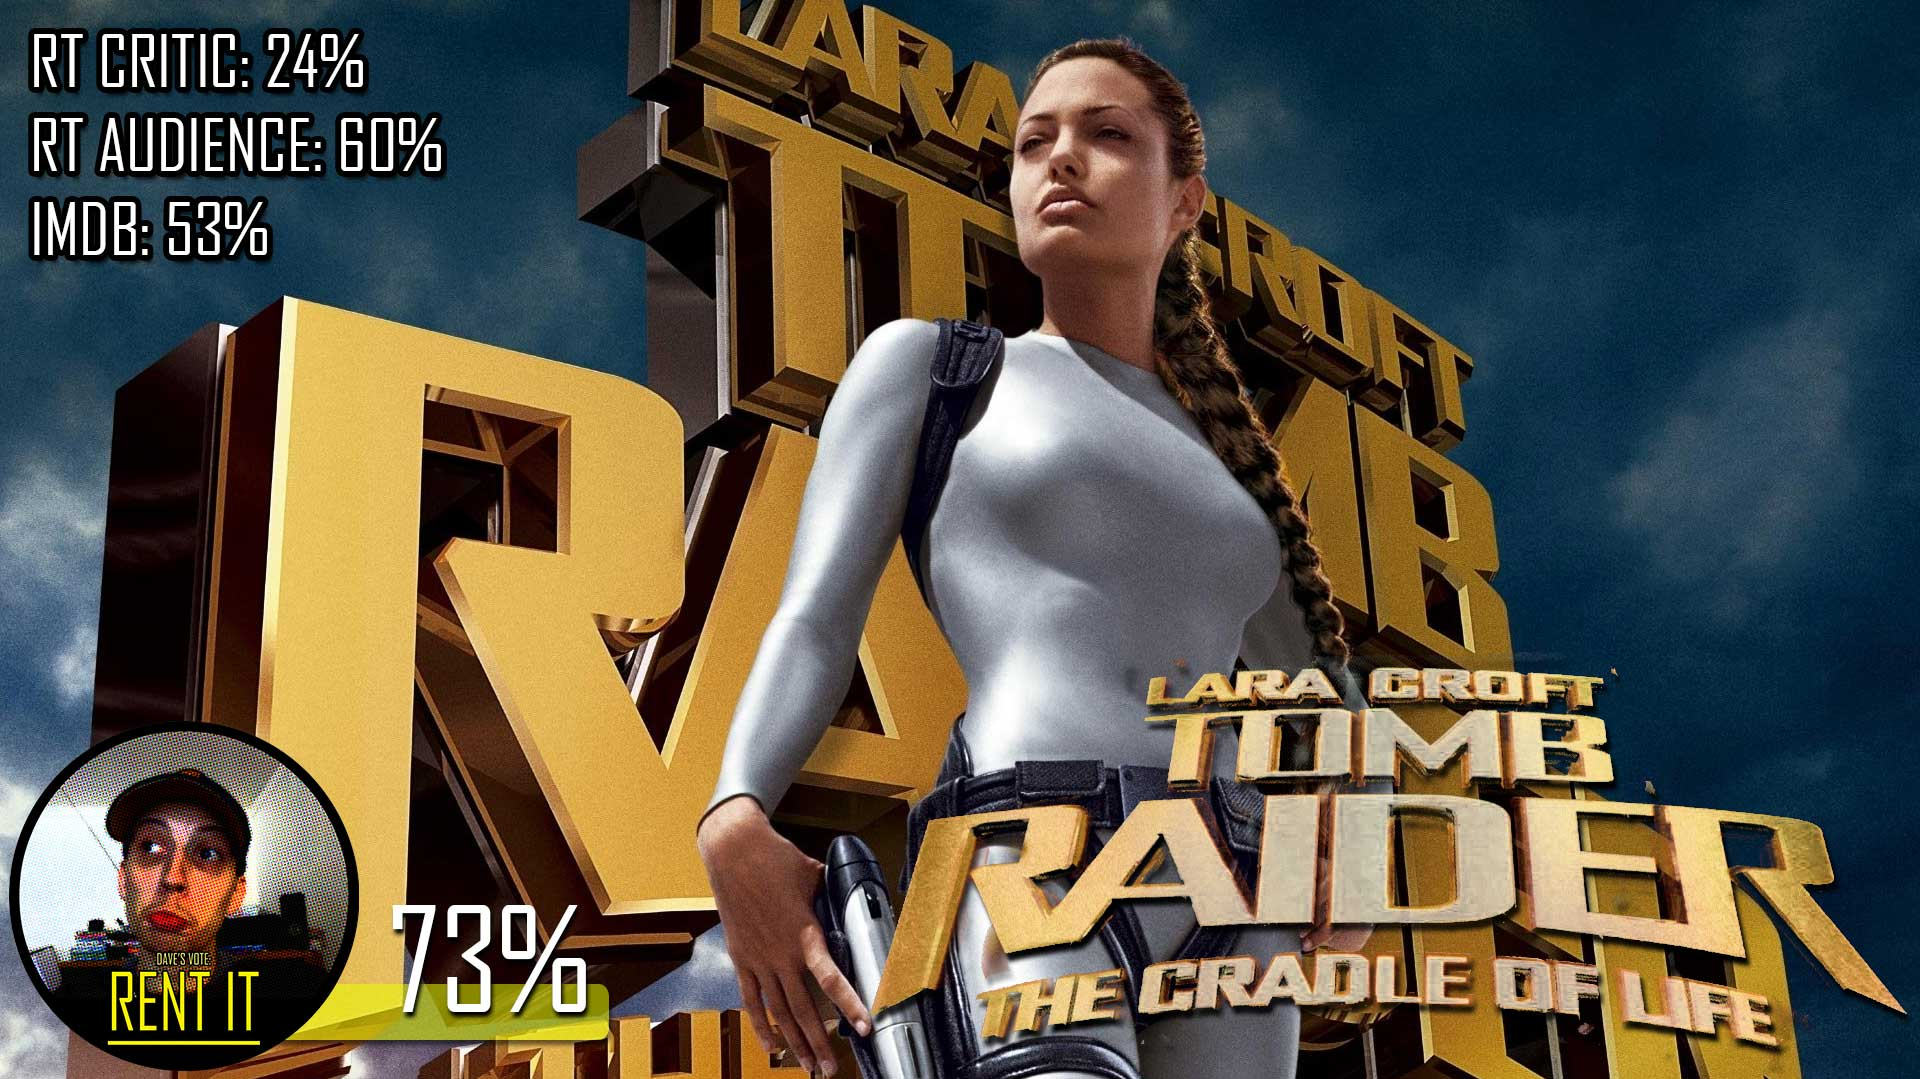 Lara Croft Tomb Raider The Cradle Of Life Wallpapers Movie